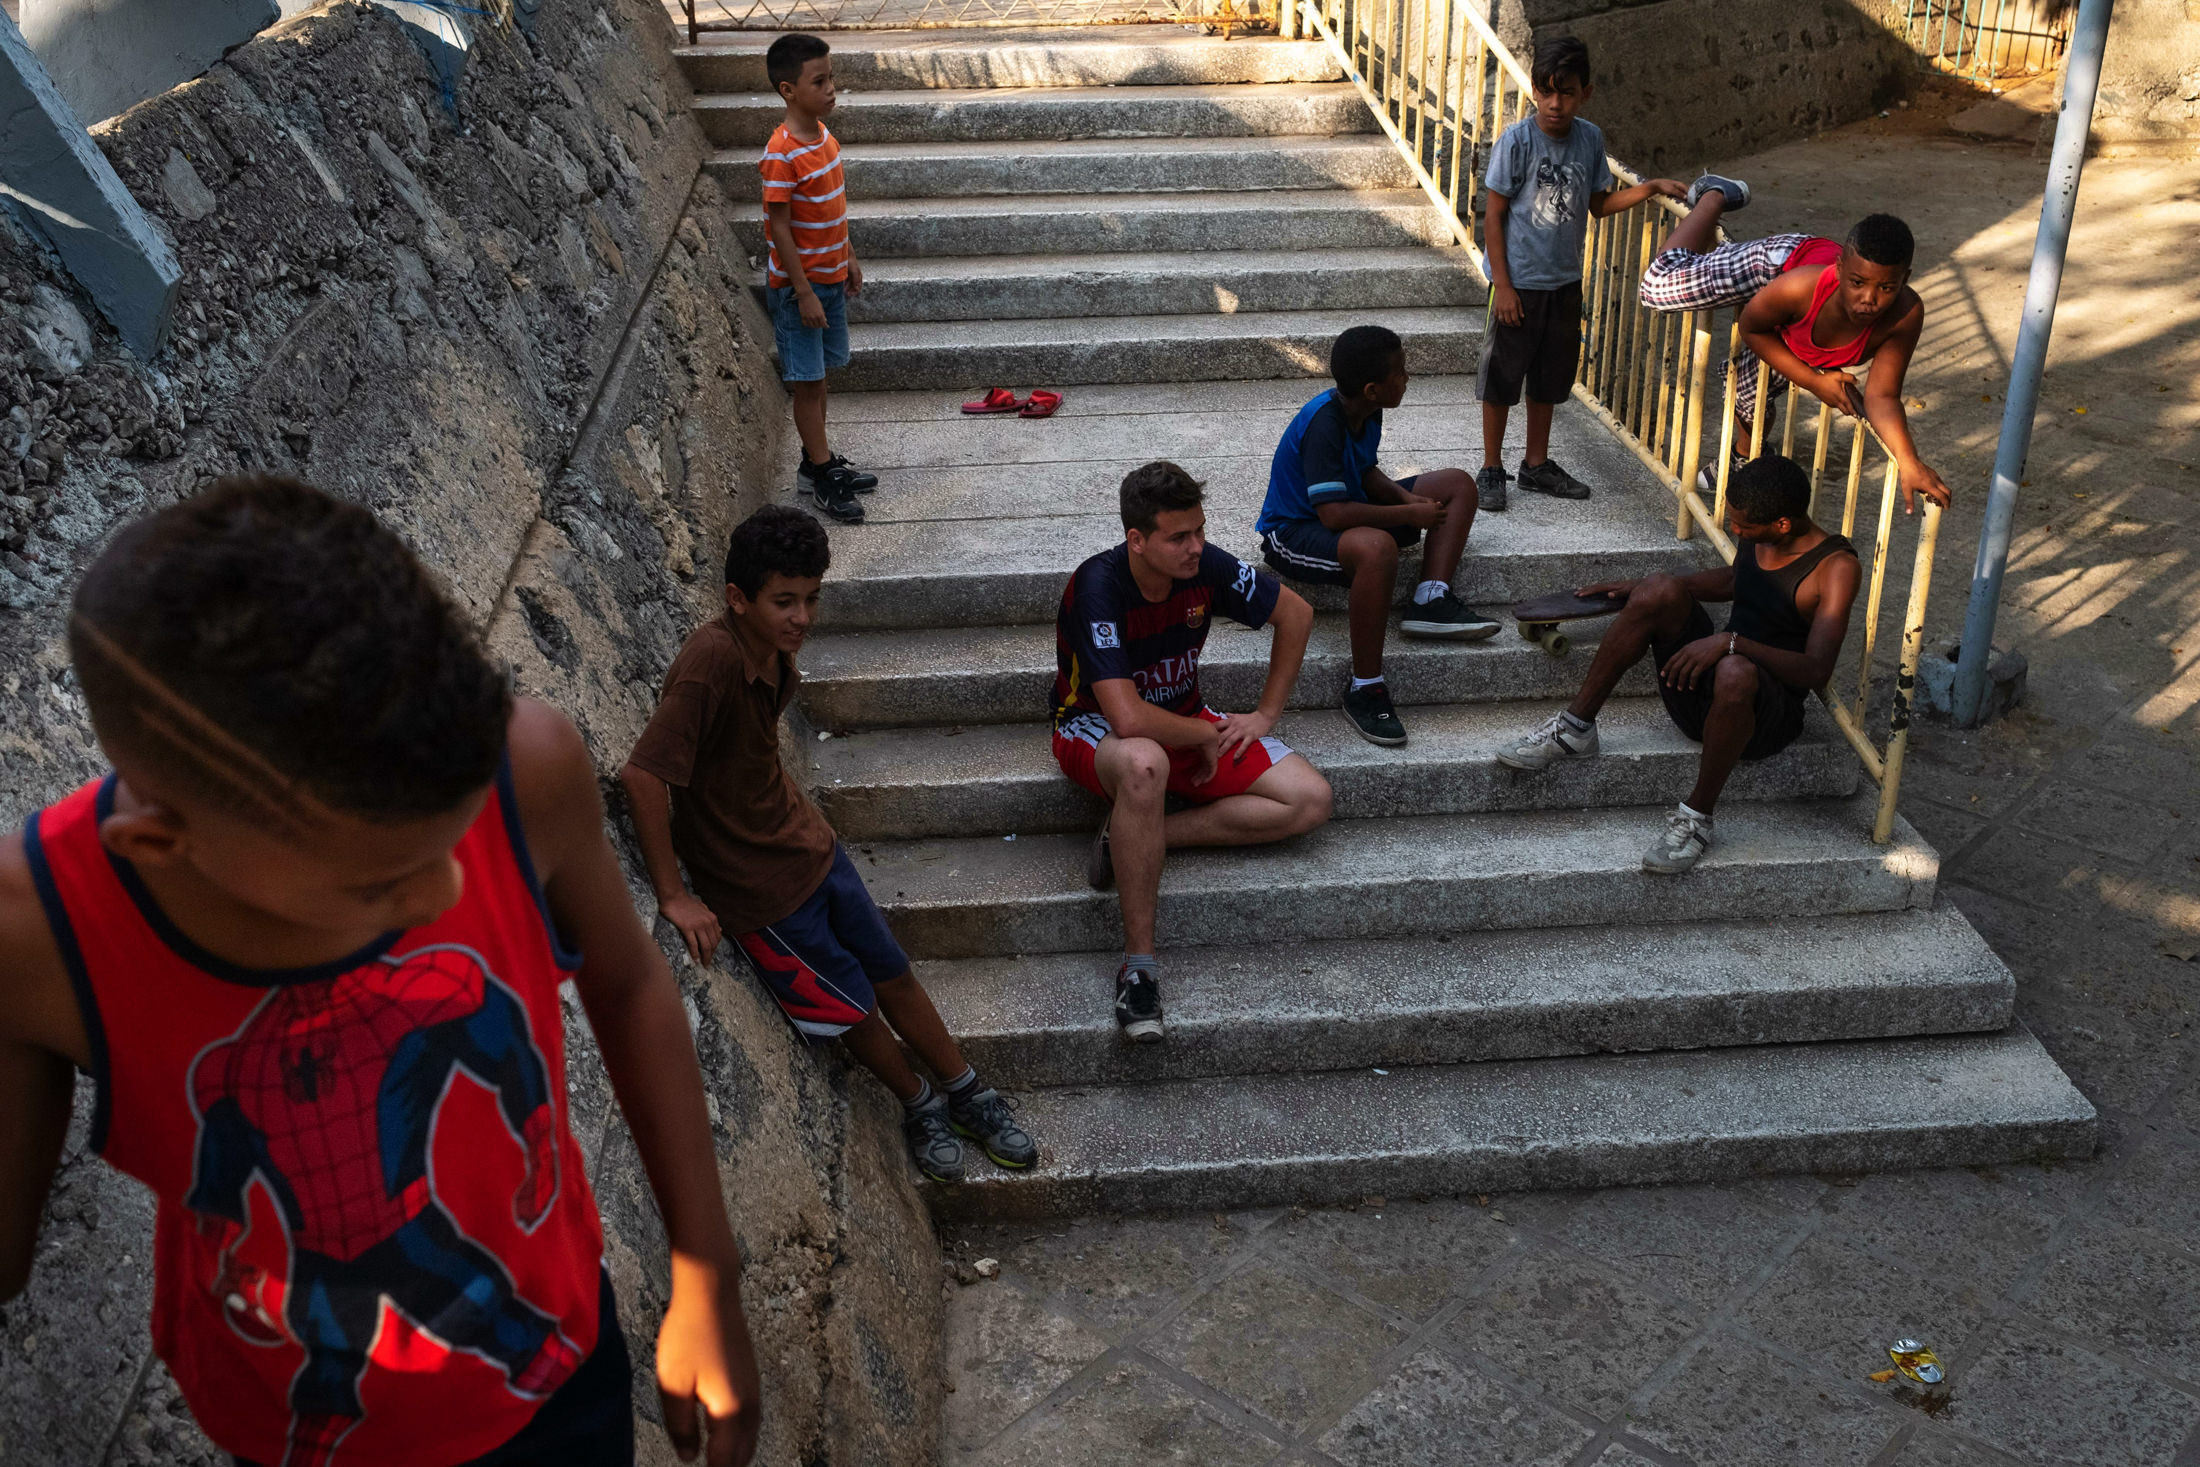 spider-man boy hanging out with his friends in Cuba